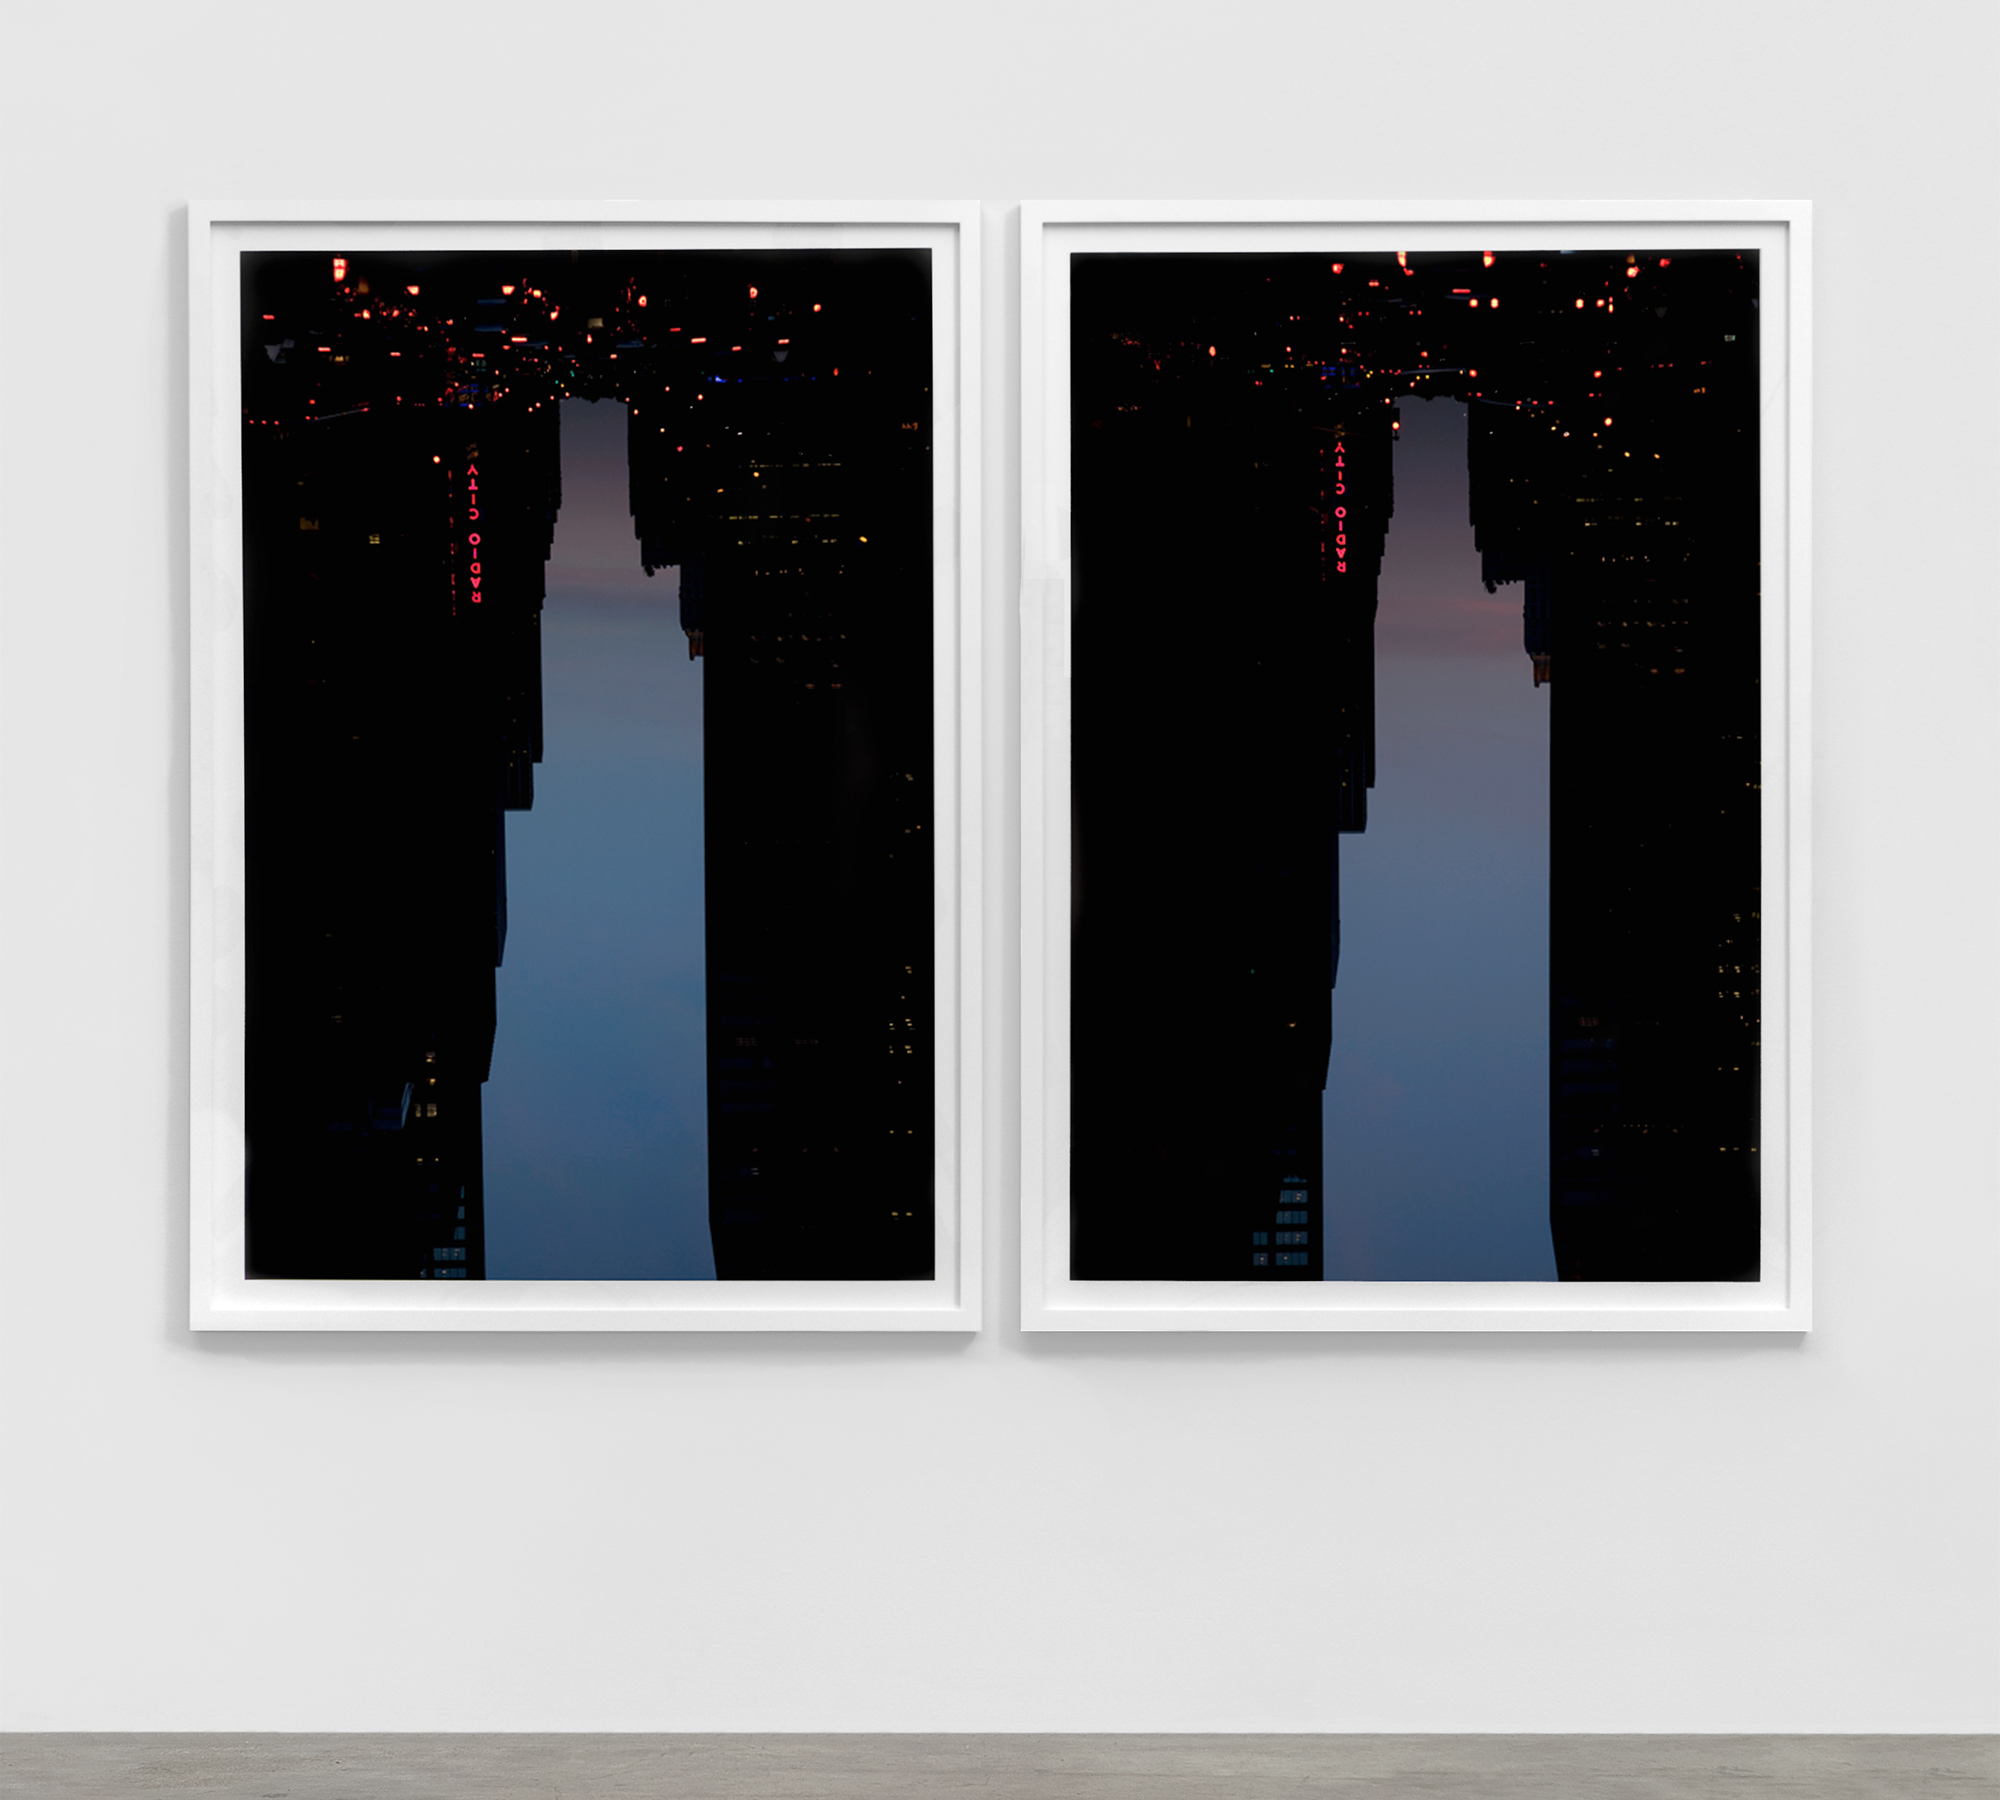 BUILDINGS MADE OF SKY diptychs